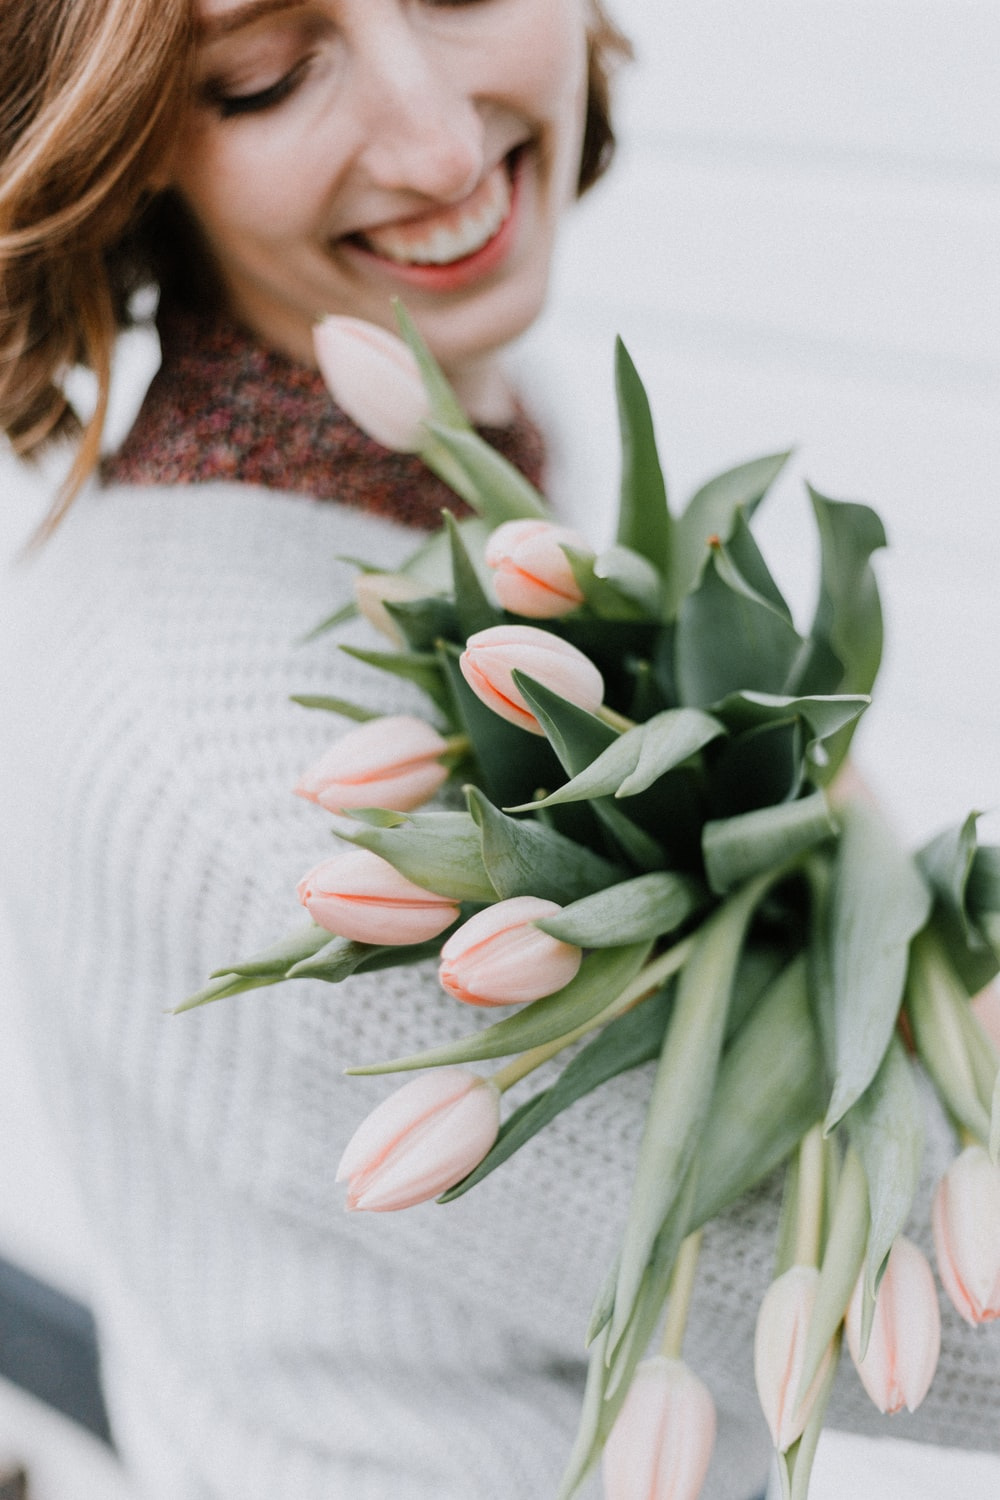 woman clutching bouquet of pink flowers and smiling